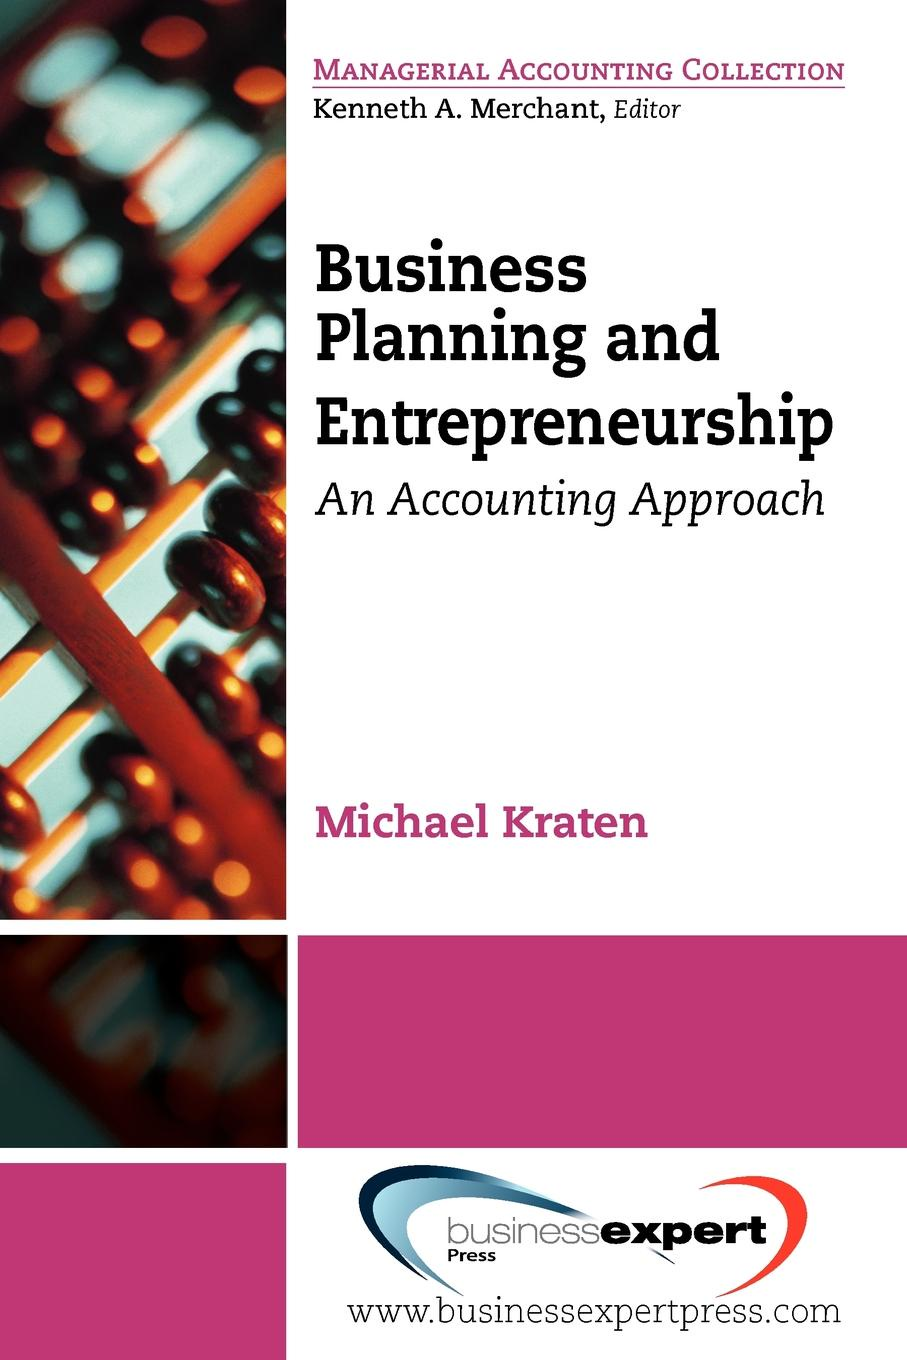 Kraten Michael Kraten, Michael Kraten Business Planning and Entrepreneurship niall mckeown mark durkin the seven principles of digital business strategy